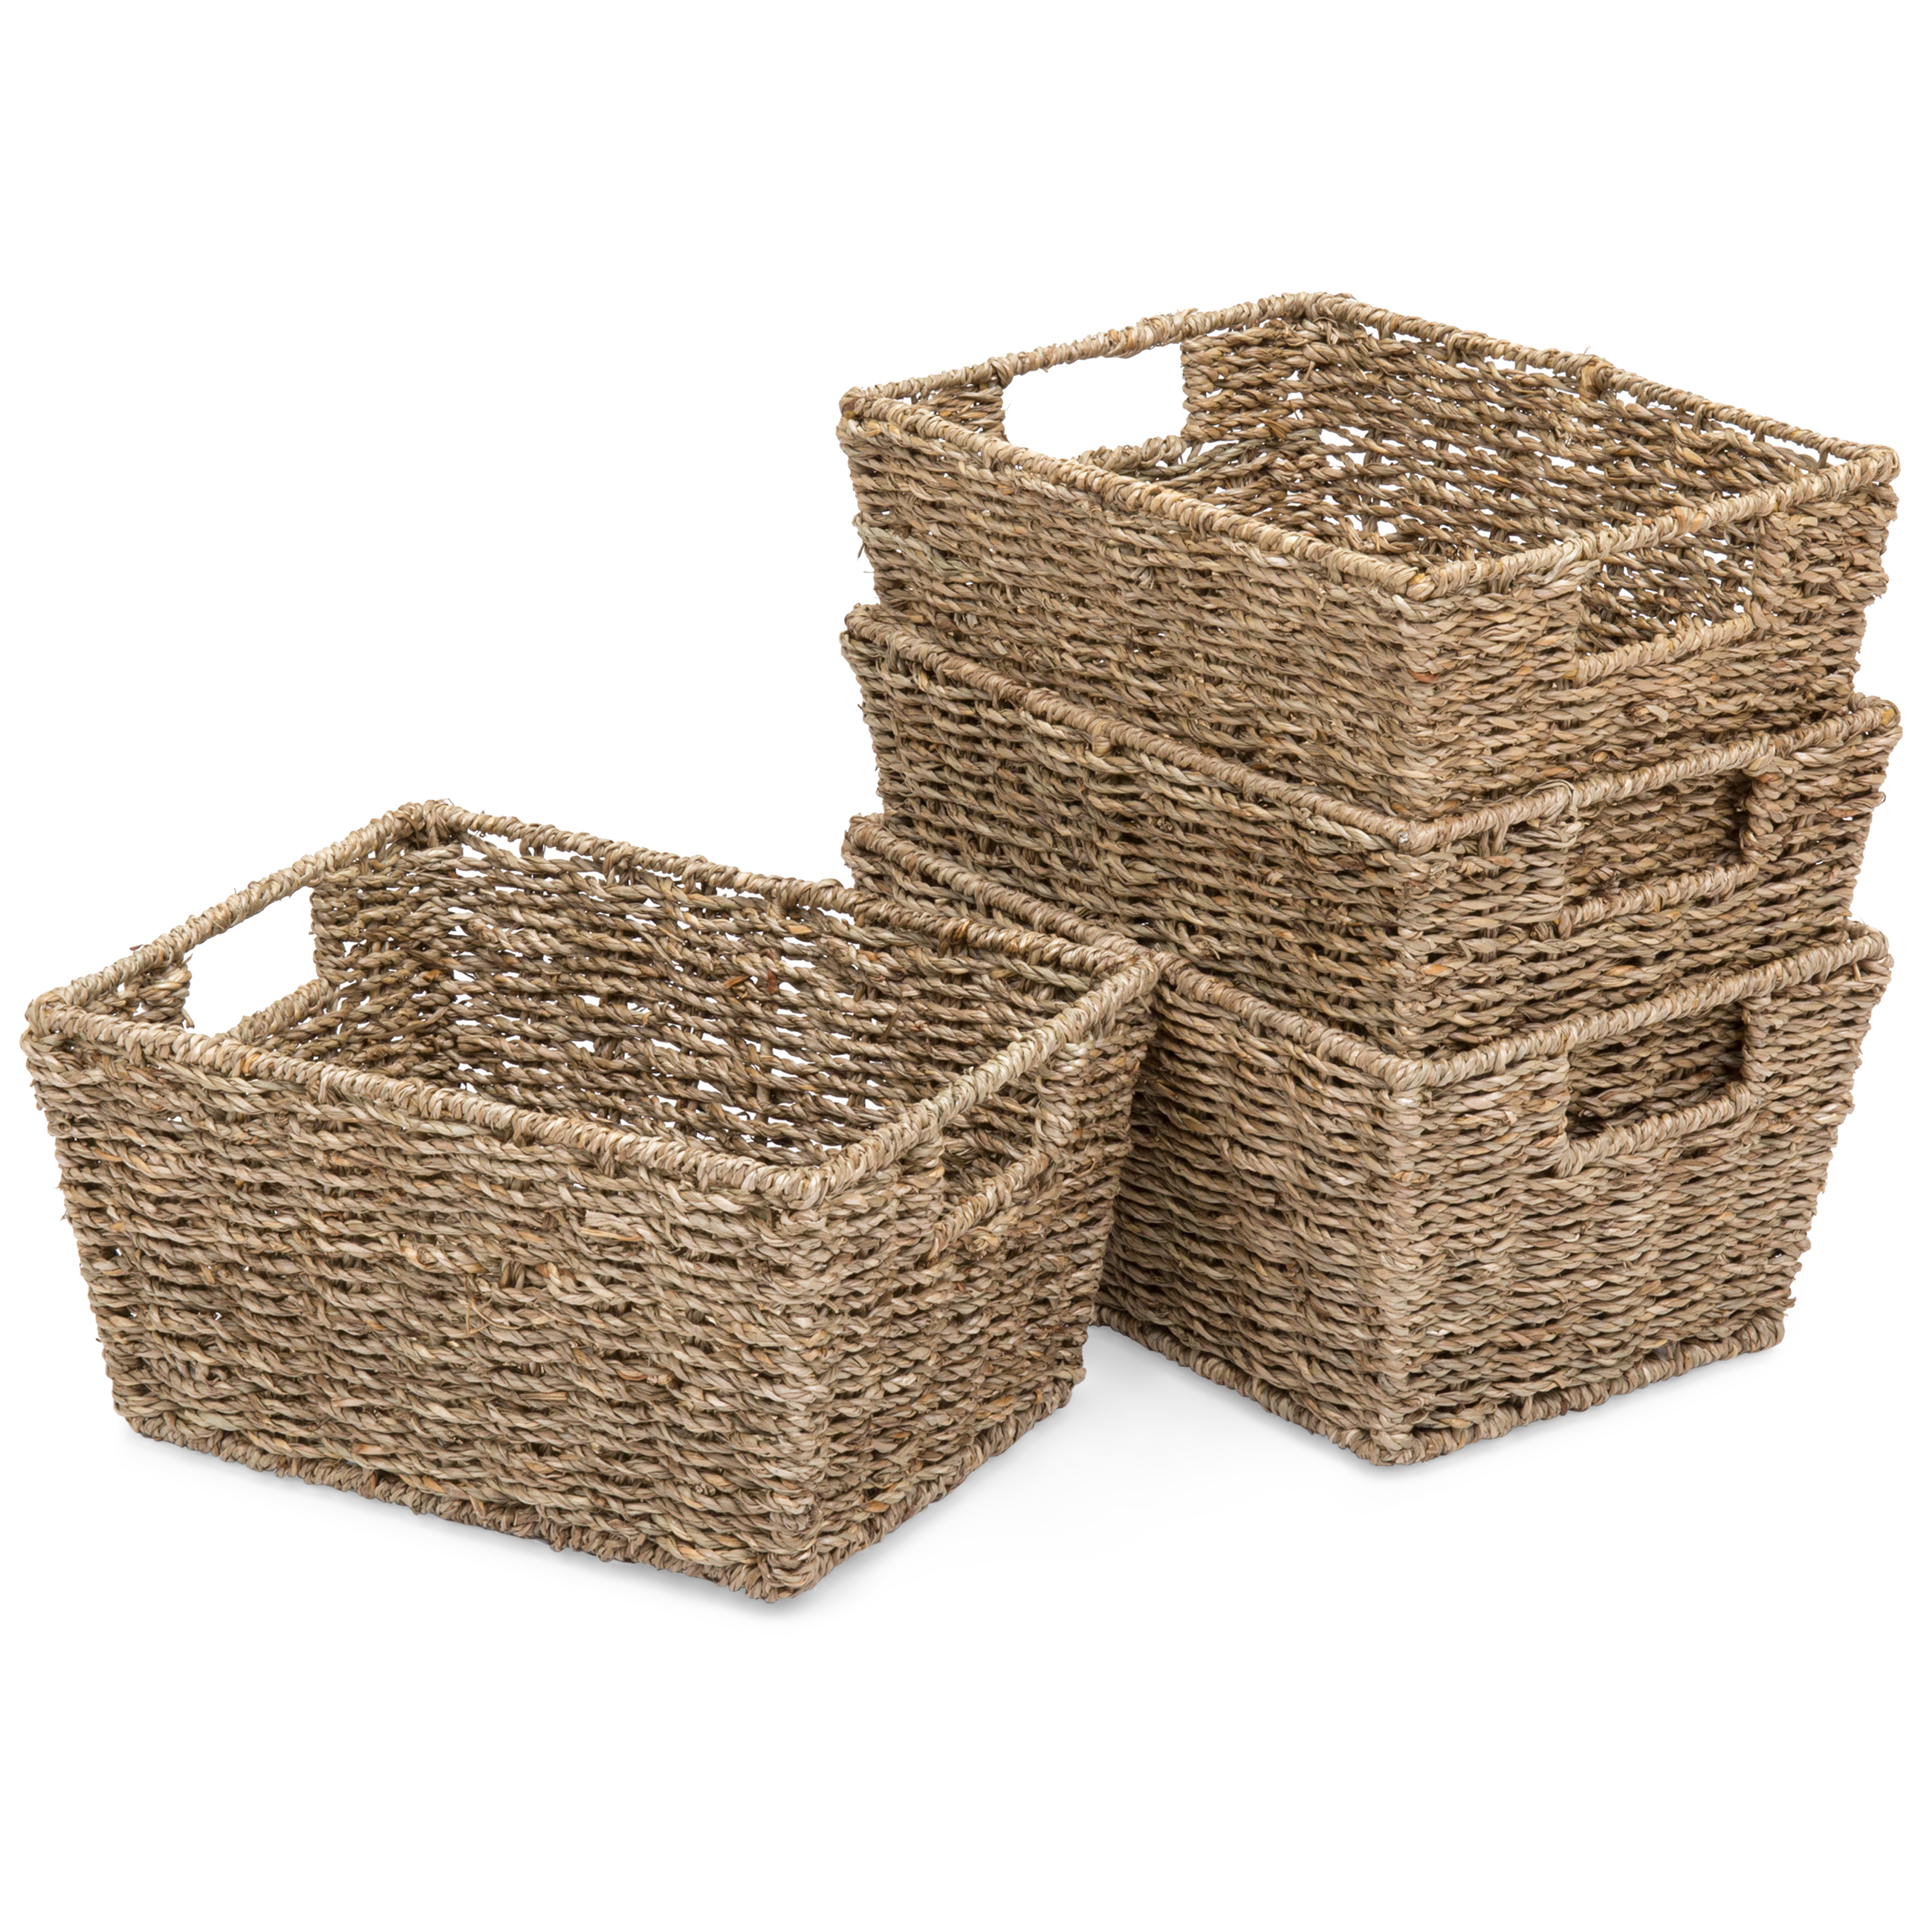 The Lakeside Collection Set of 2 Baskets